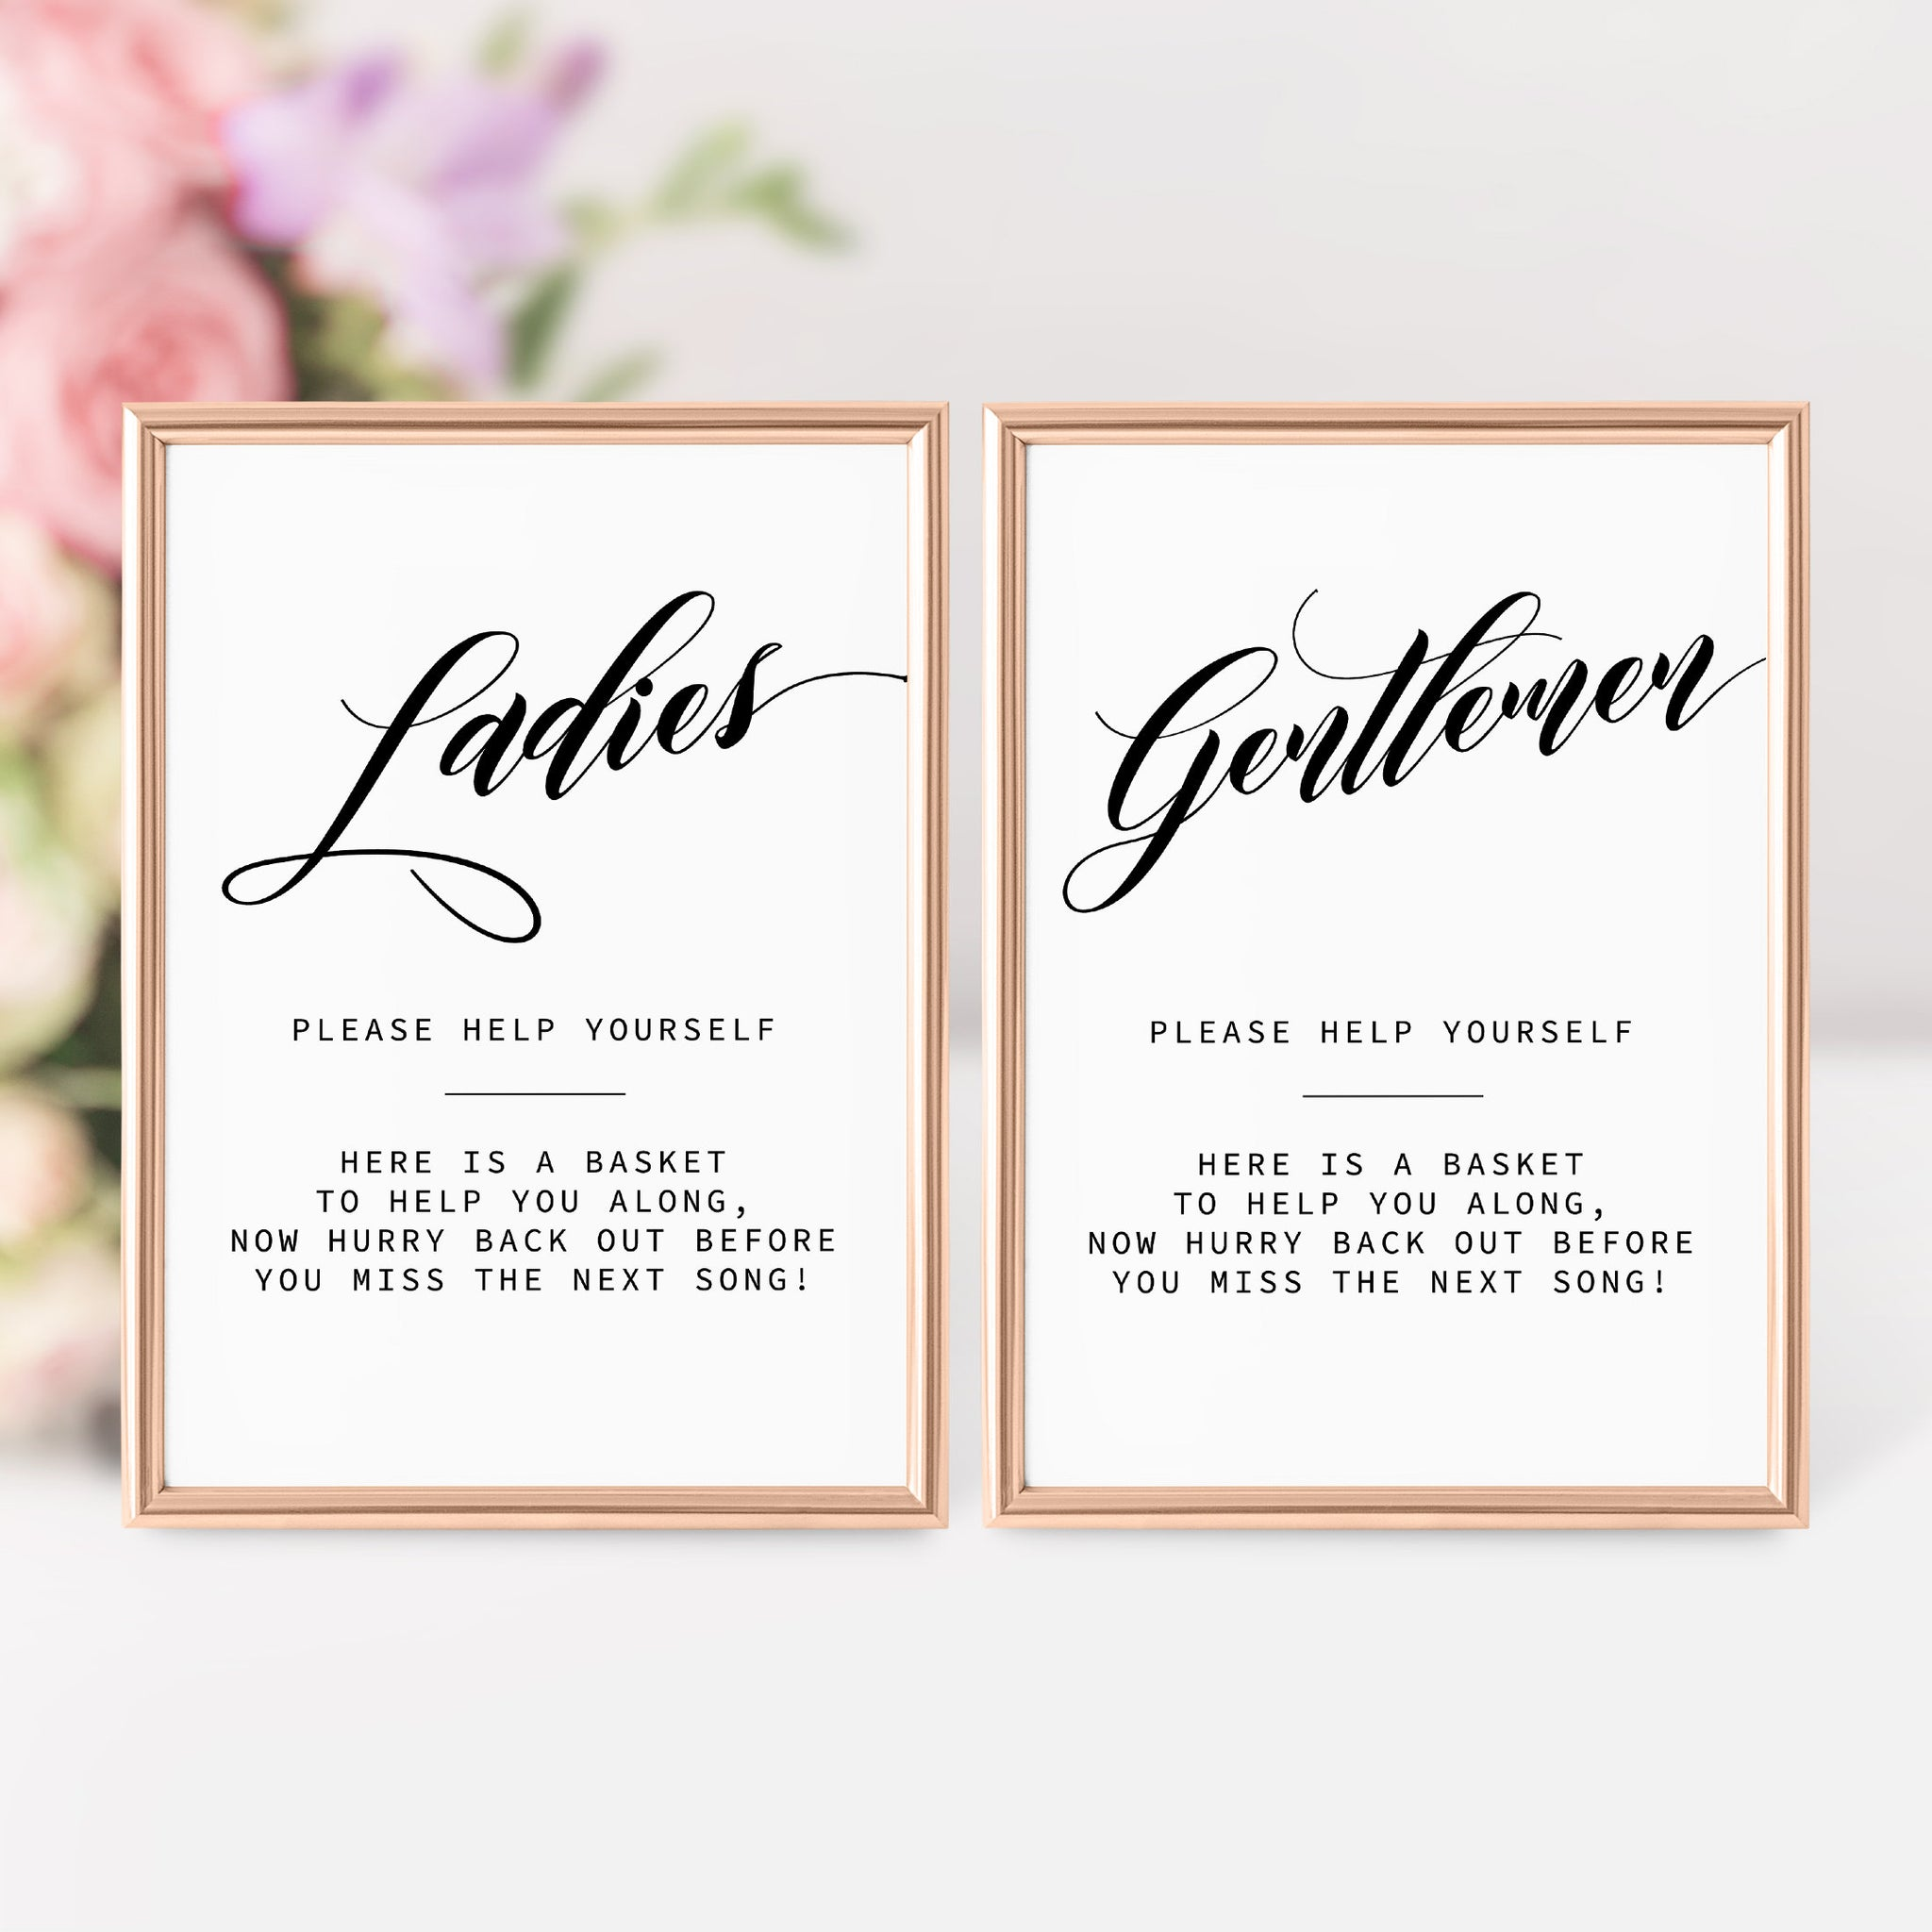 Wedding Bathroom Basket Sign, Ladies Bathroom Sign Wedding, Gentlemen Bathroom Sign at Wedding, Bathroom Wedding Sign Printable - SFB100 - @PlumPolkaDot